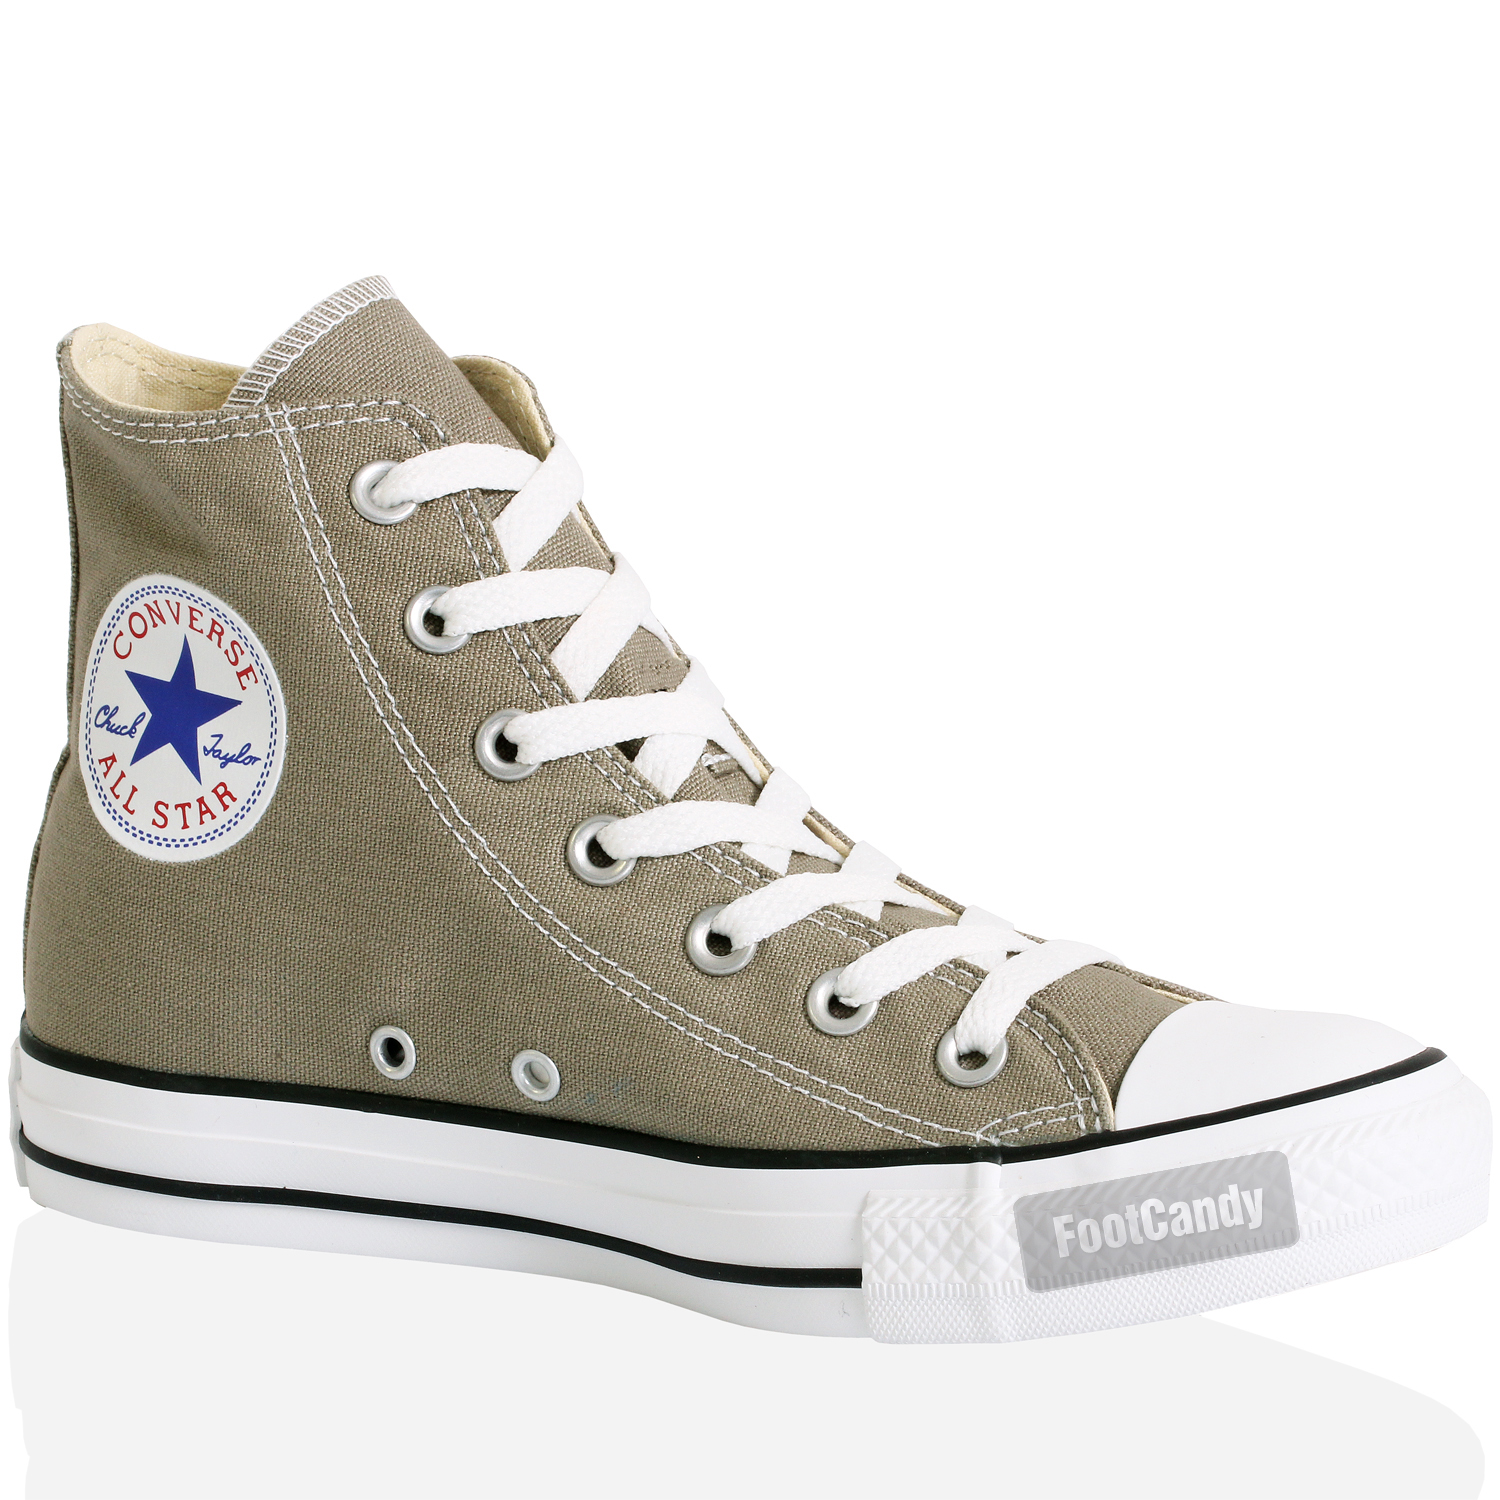 CONVERSE-ALL-STAR-CHUCK-TAYLOR-HI-LO-TOP-CANVAS-SKATE-TRAINERS-BOOTS-SHOES-SIZE